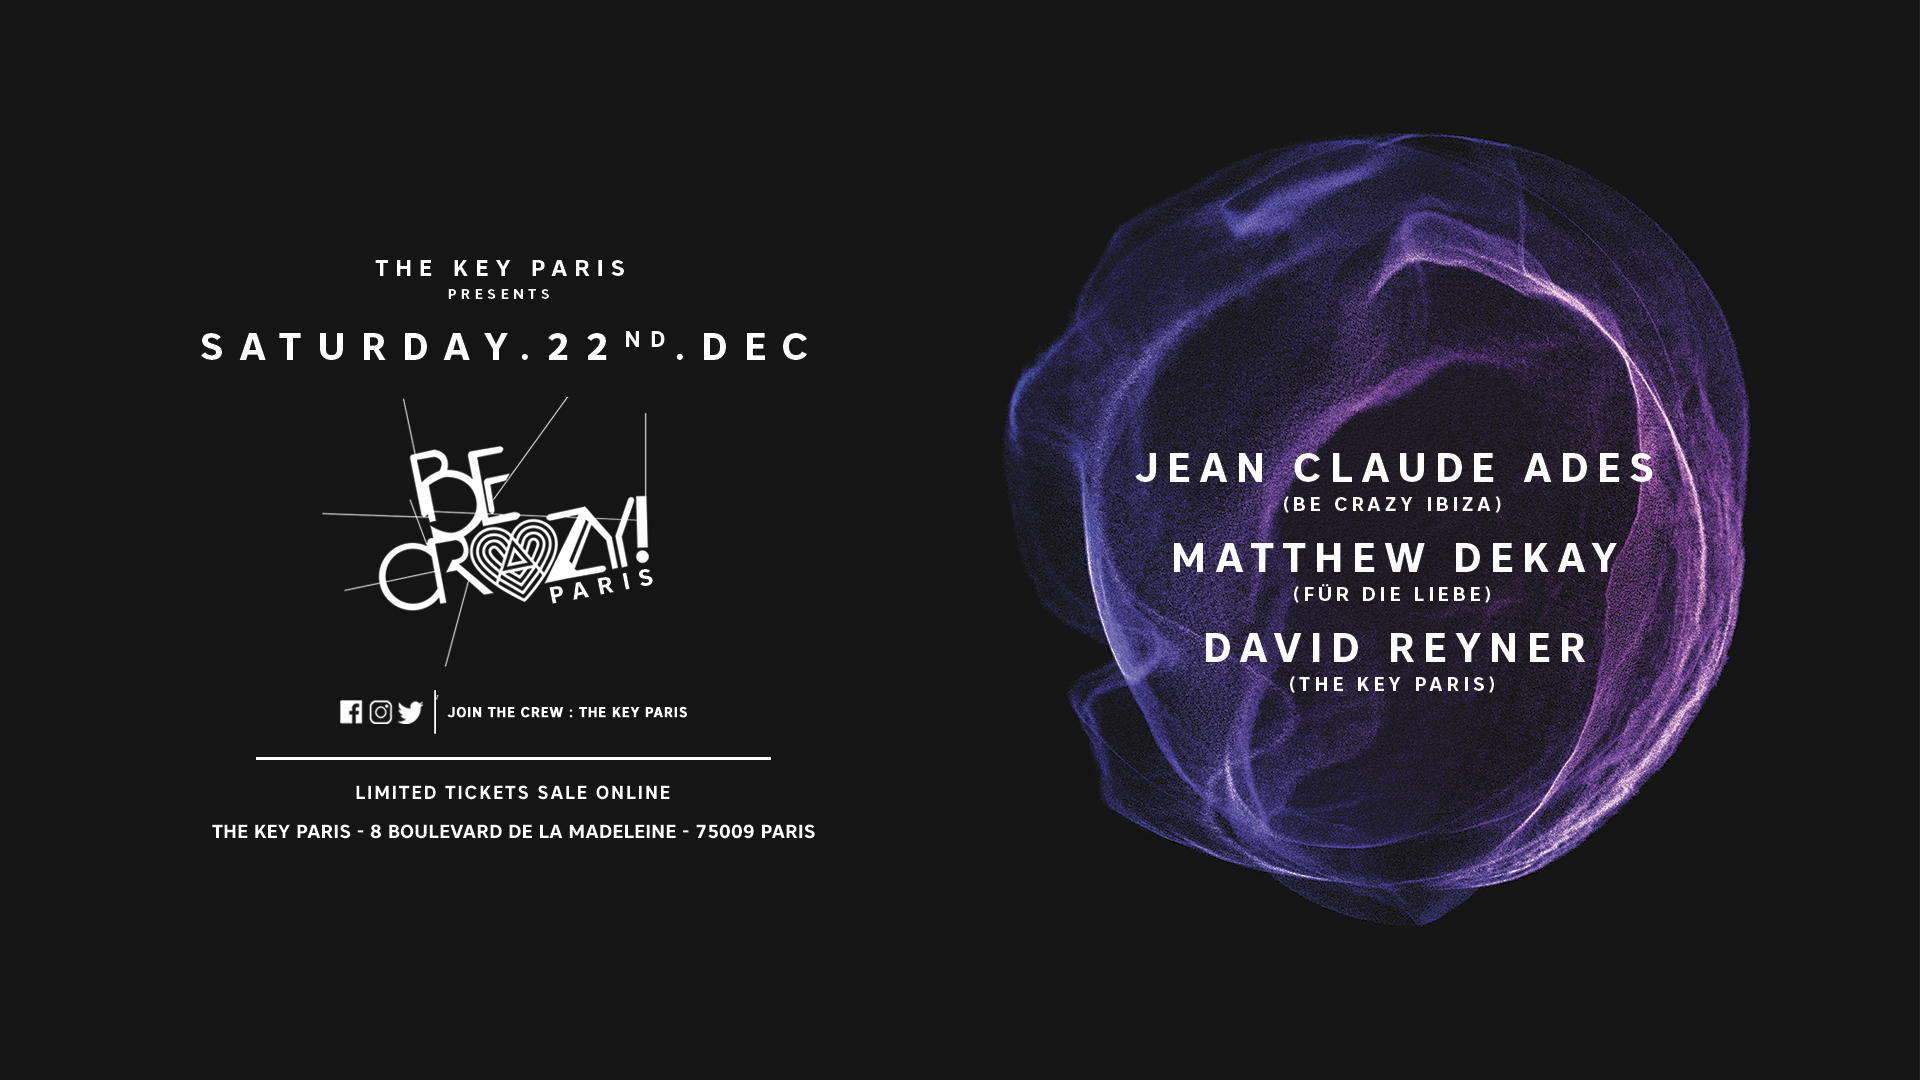 The Key present Be Crazy! with Jean Claude Ades, Matthew dekay